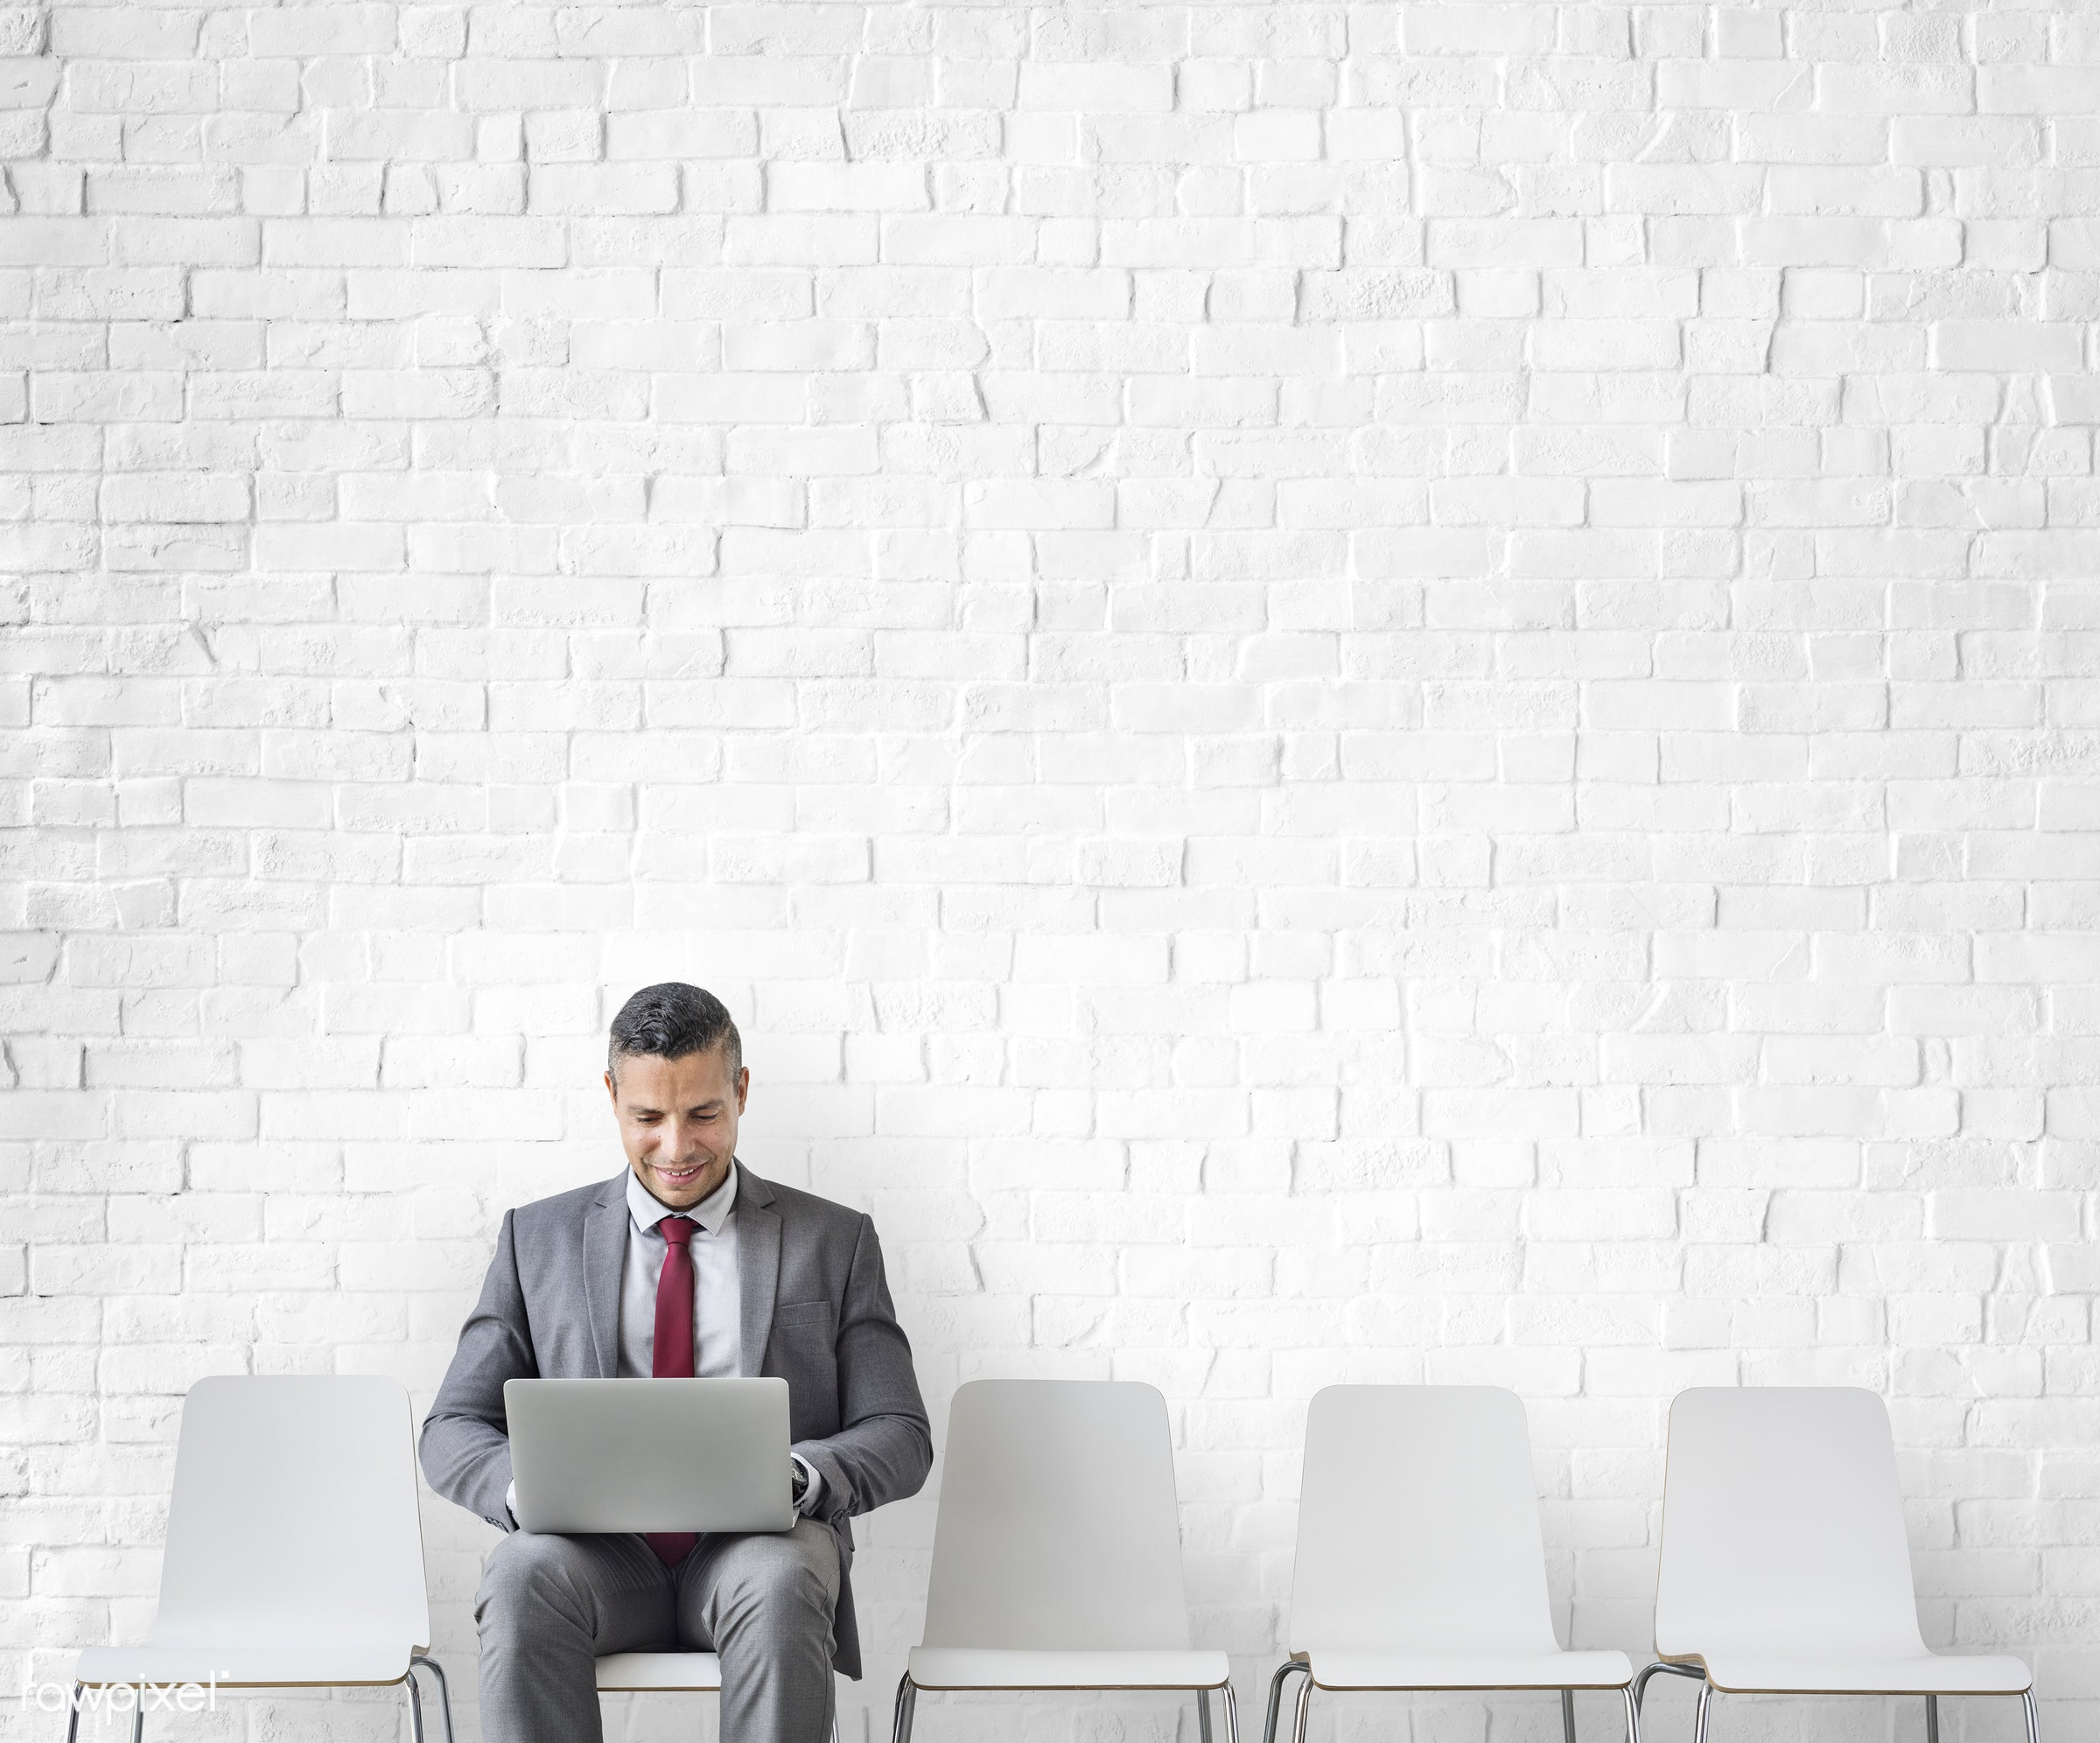 Businessman Using Laptop Connection Communication Concept - copy space, alone, business, career, chairs, computer, design...